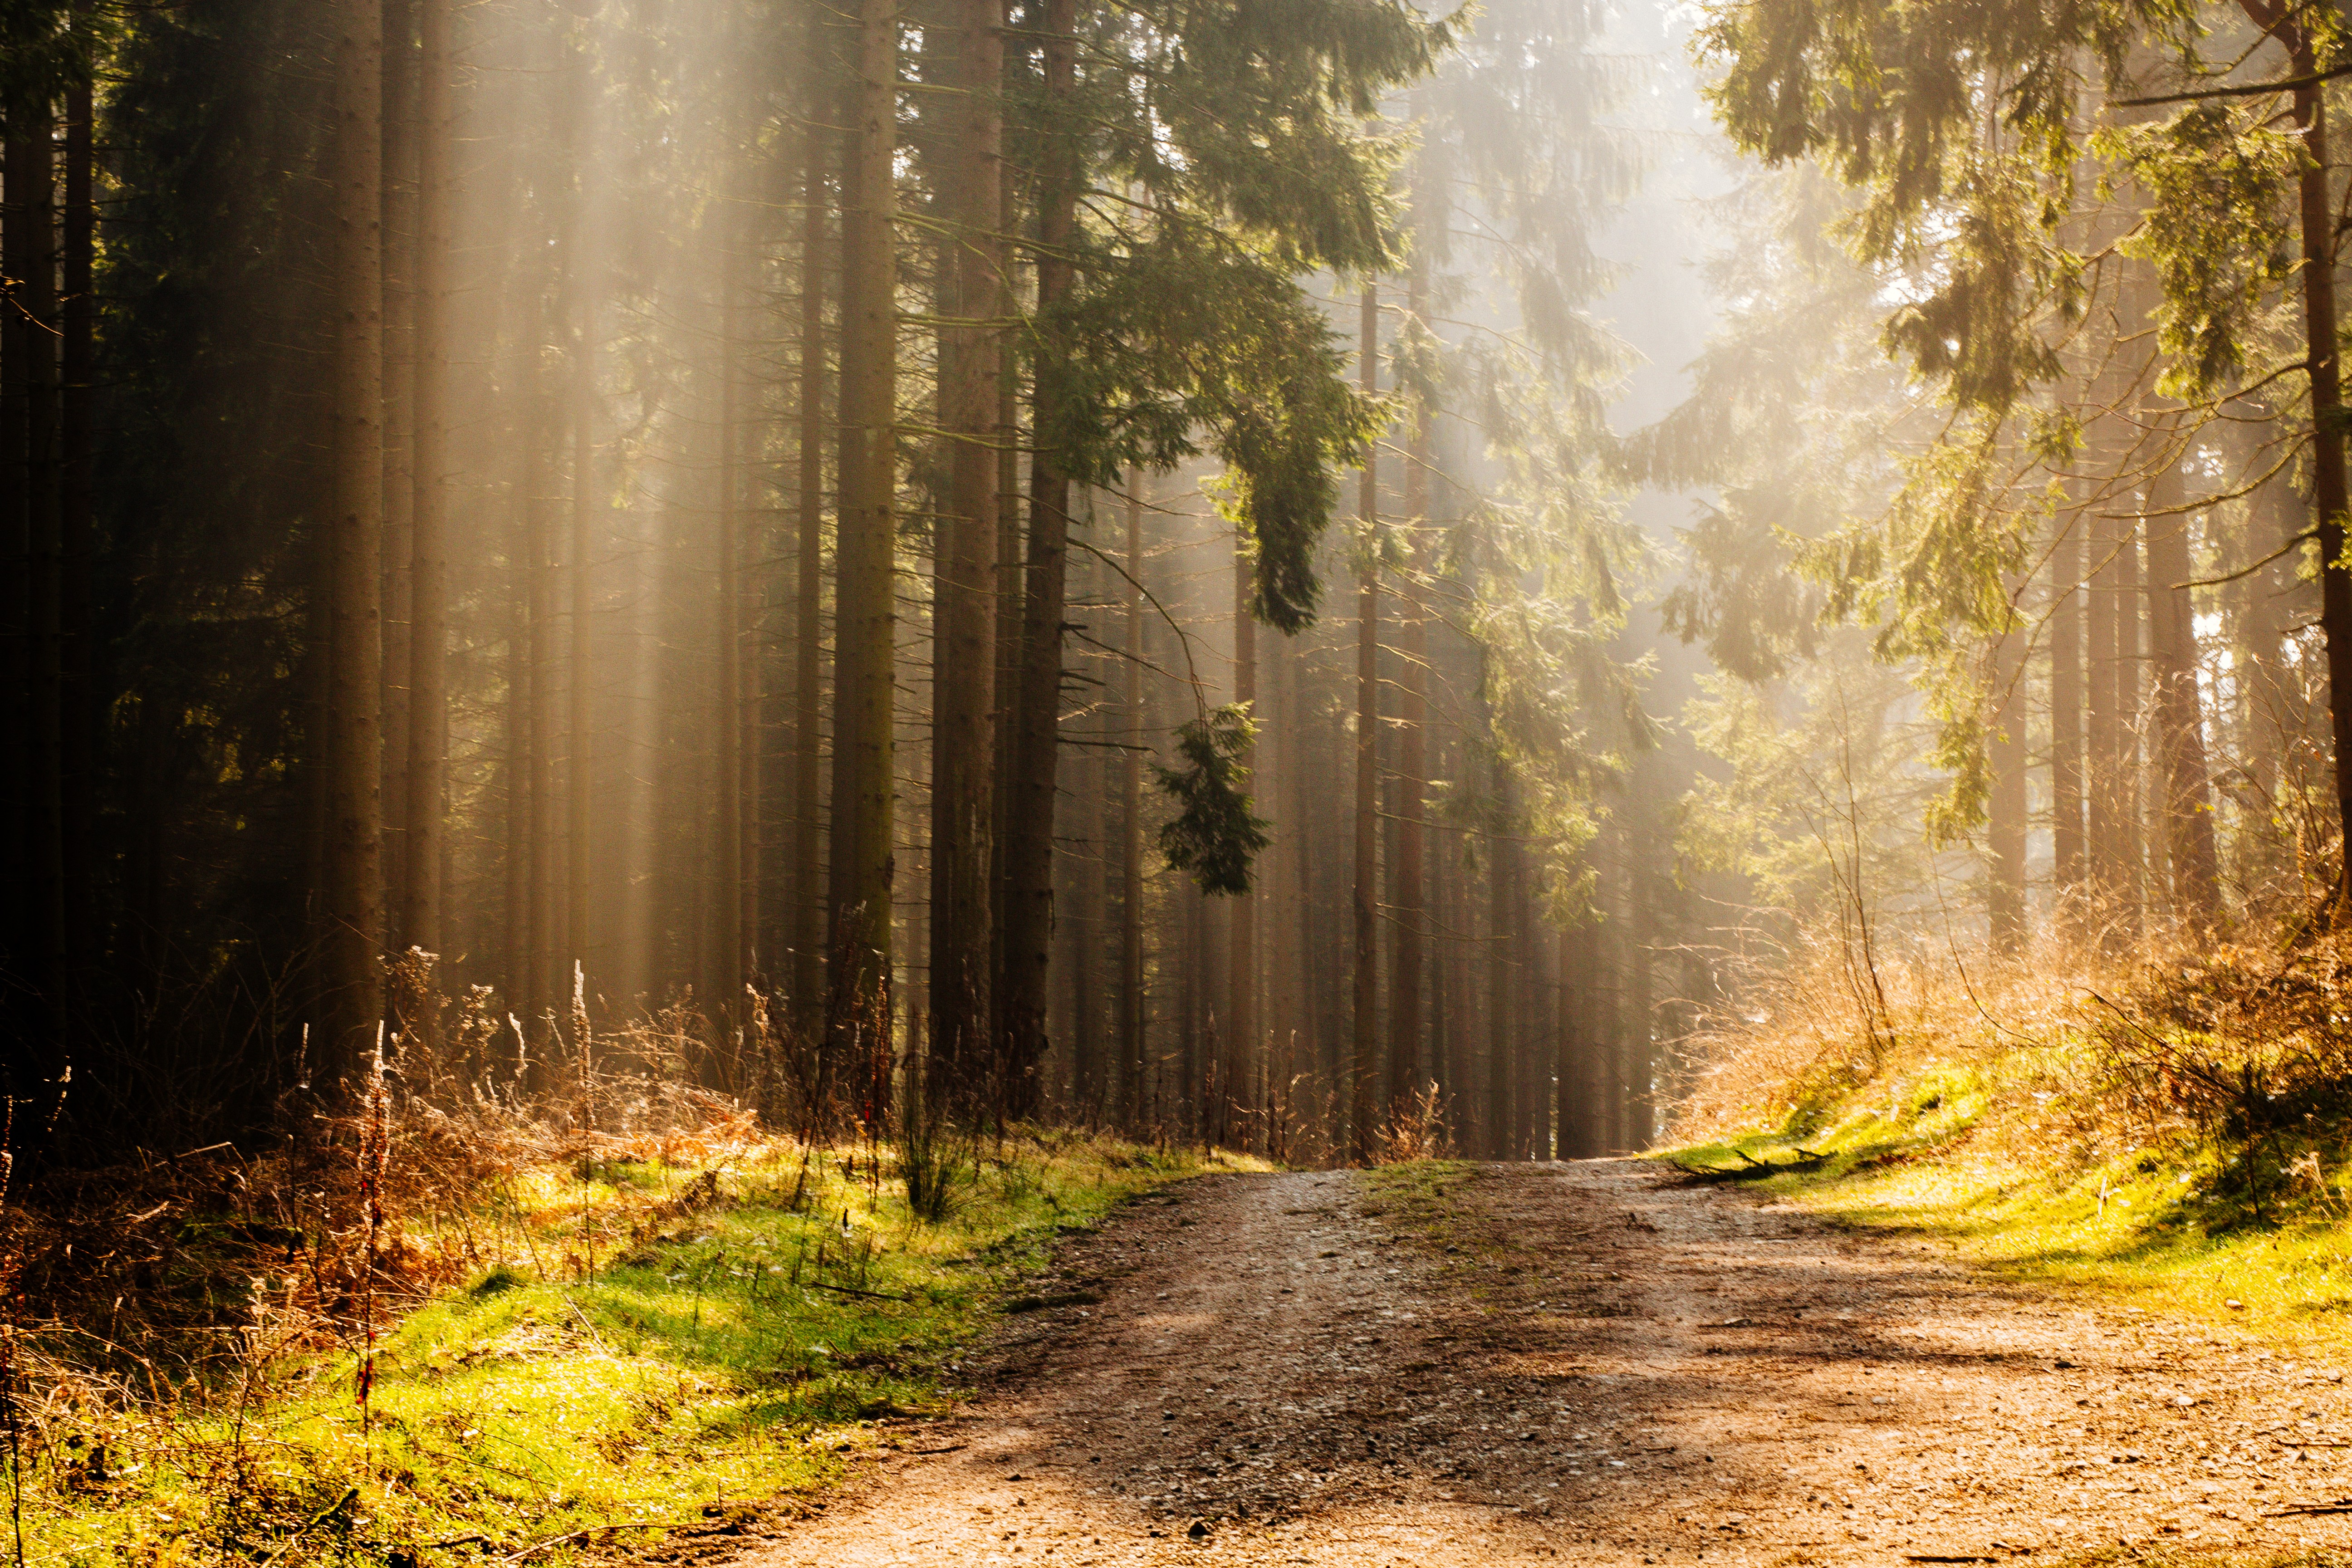 Sunbeam in the Forrest